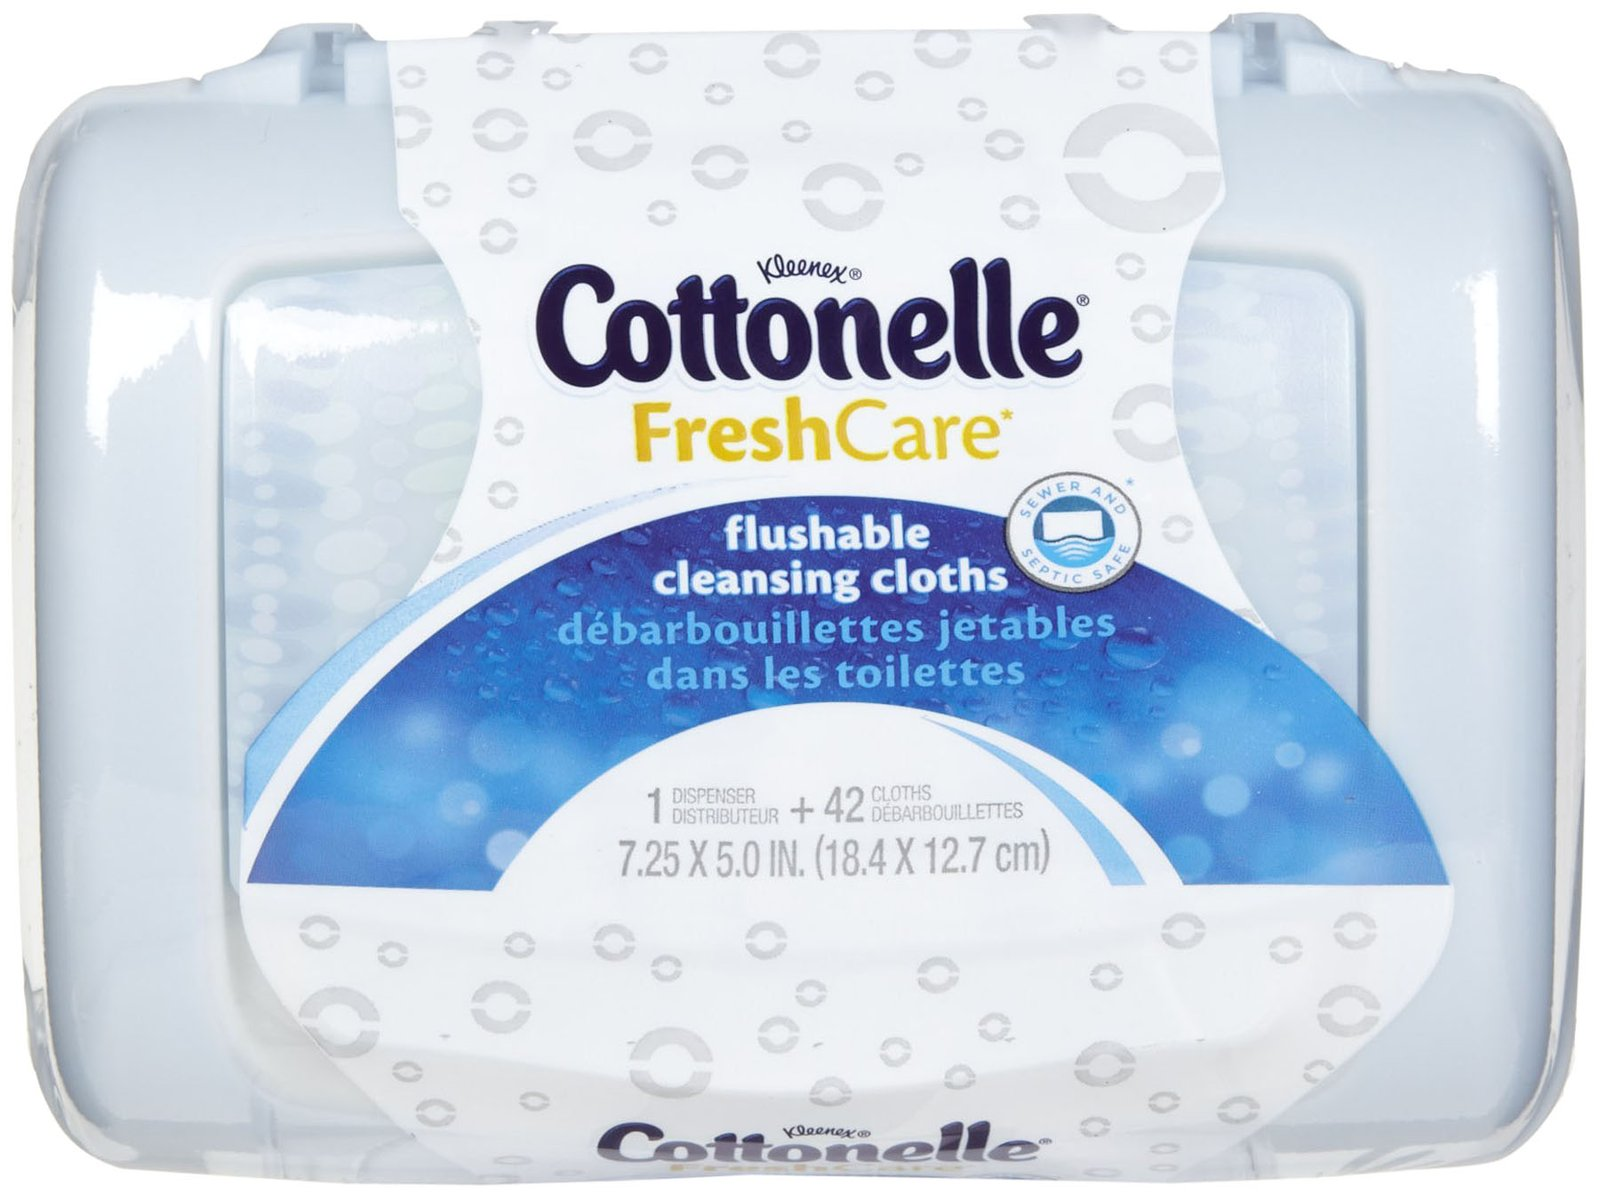 Walmart: Cottonelle FreshCare Wipes just $0.78!